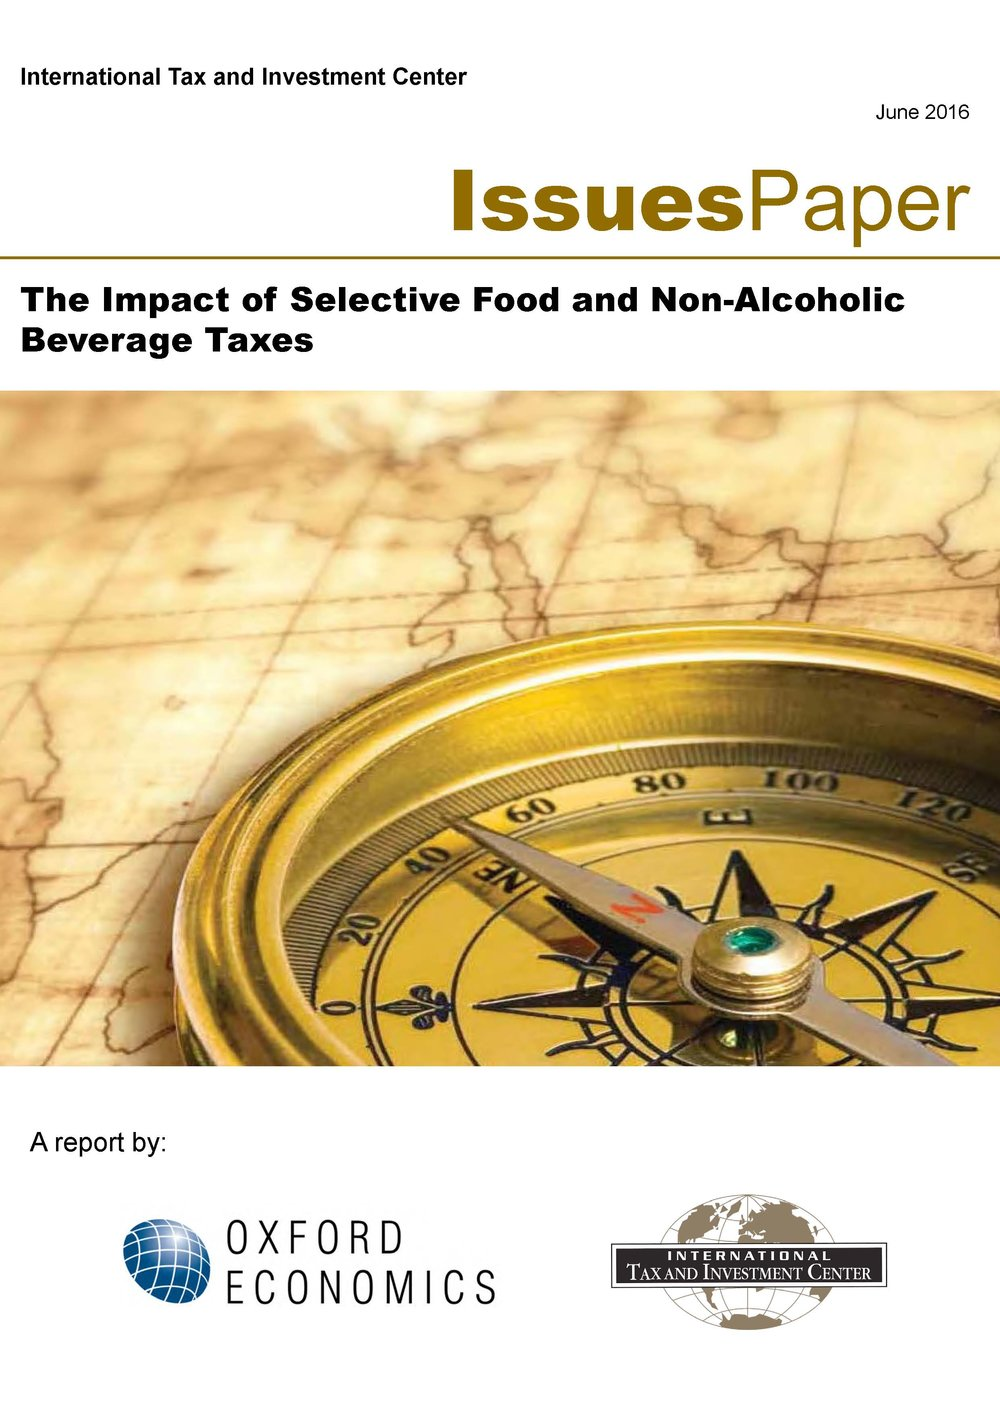 Pages from The Impact of Selective Food and Non-Alcoholic Beverage Taxes.jpg